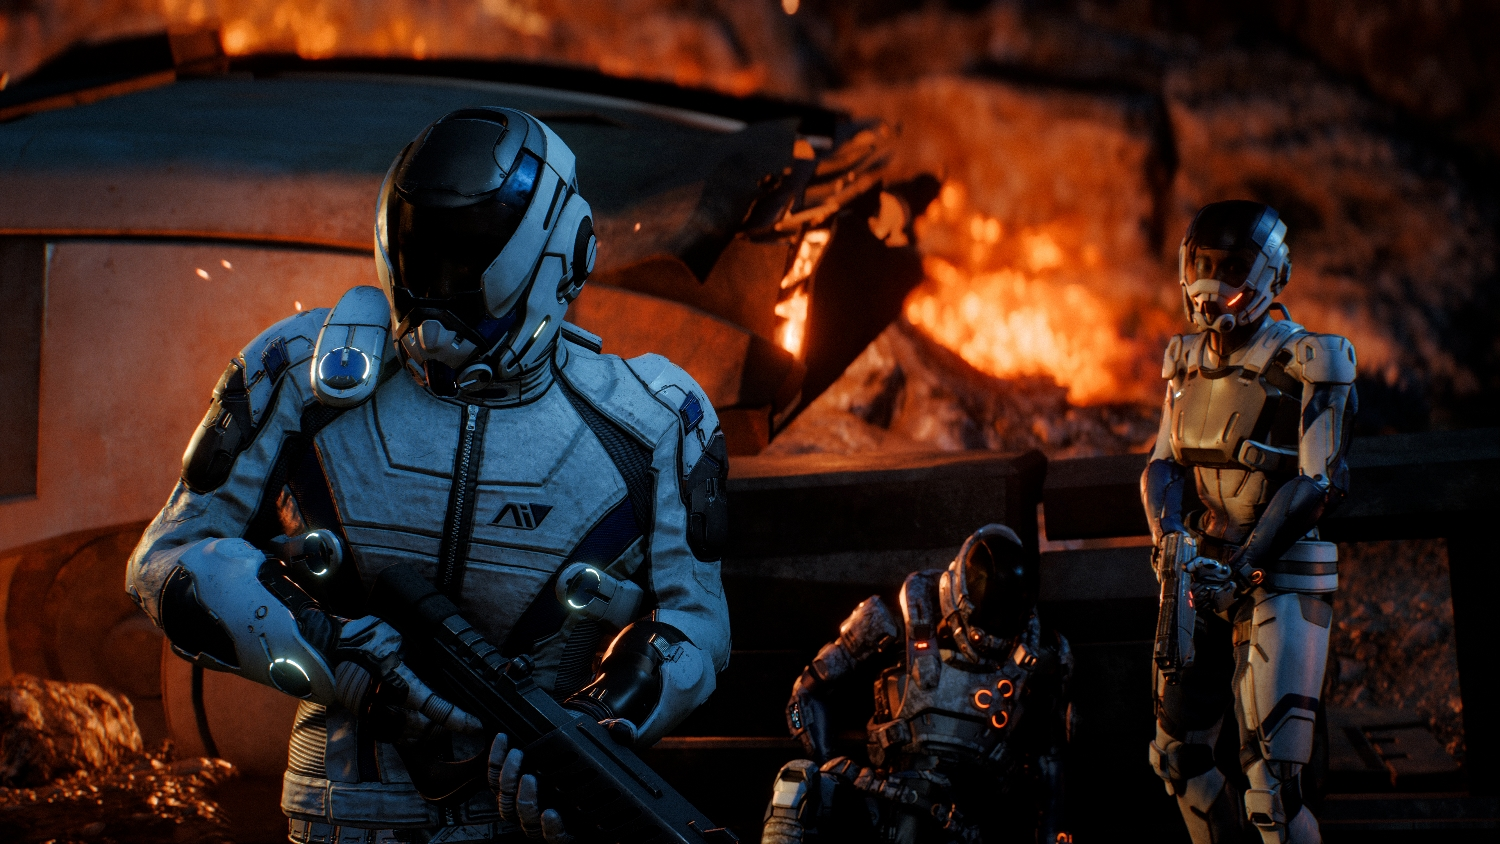 Mass Effect: Andromeda hands-on preview and interview – 'Humility is a key part of the game'